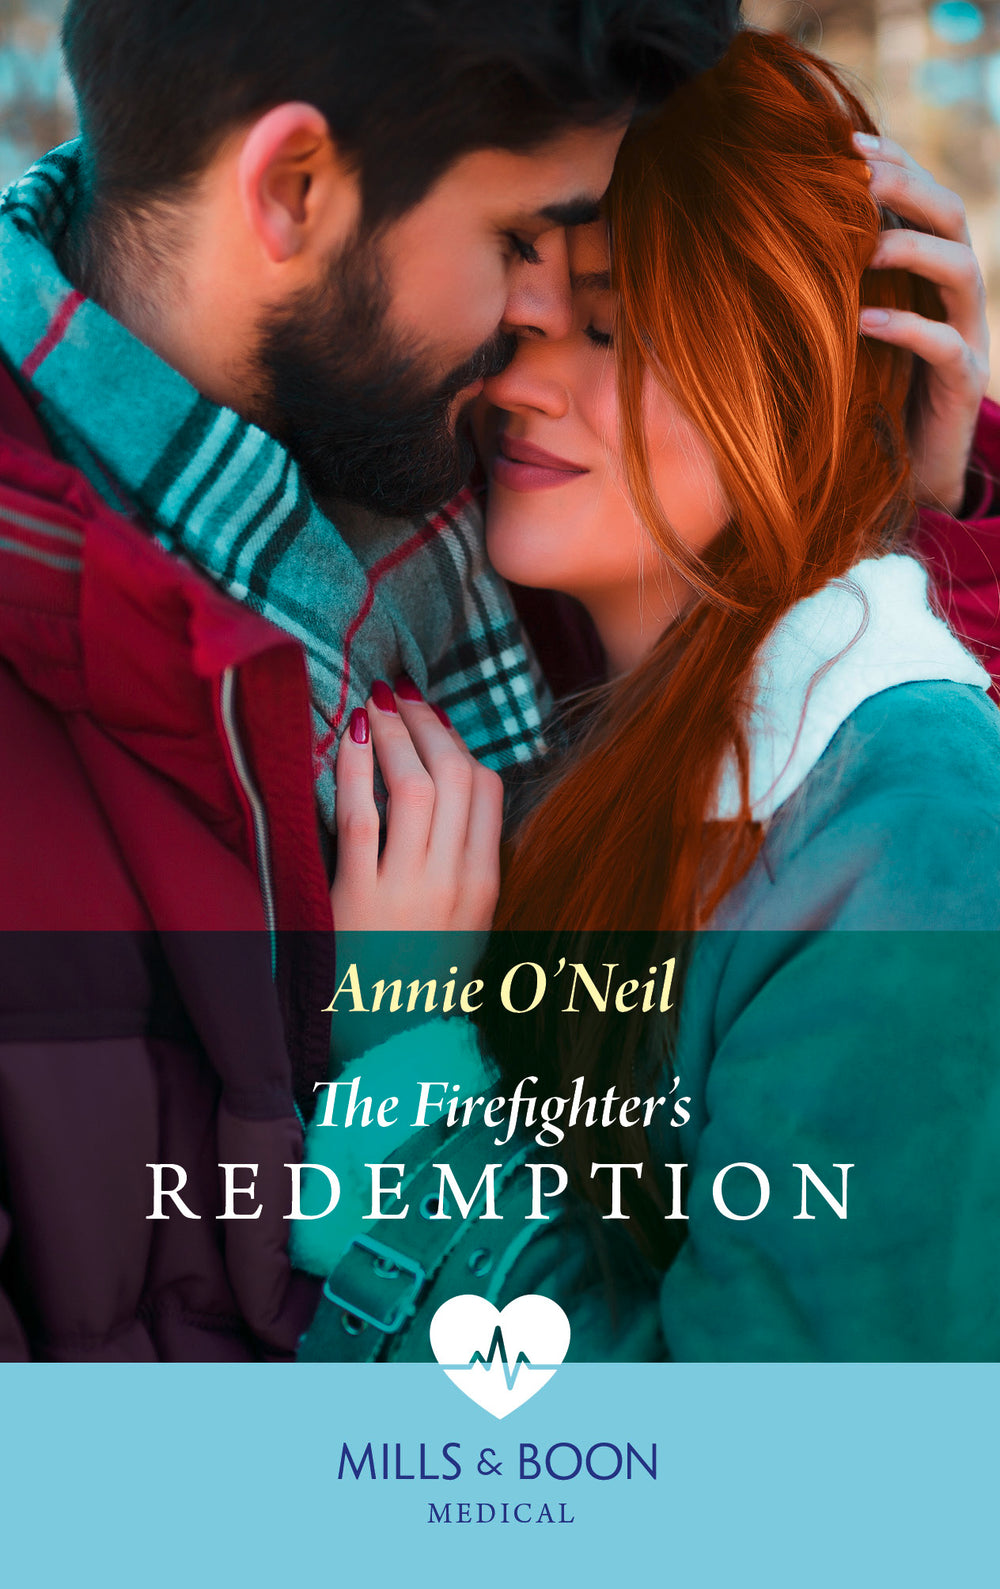 The Firefighter's Redemption - Chapter 9